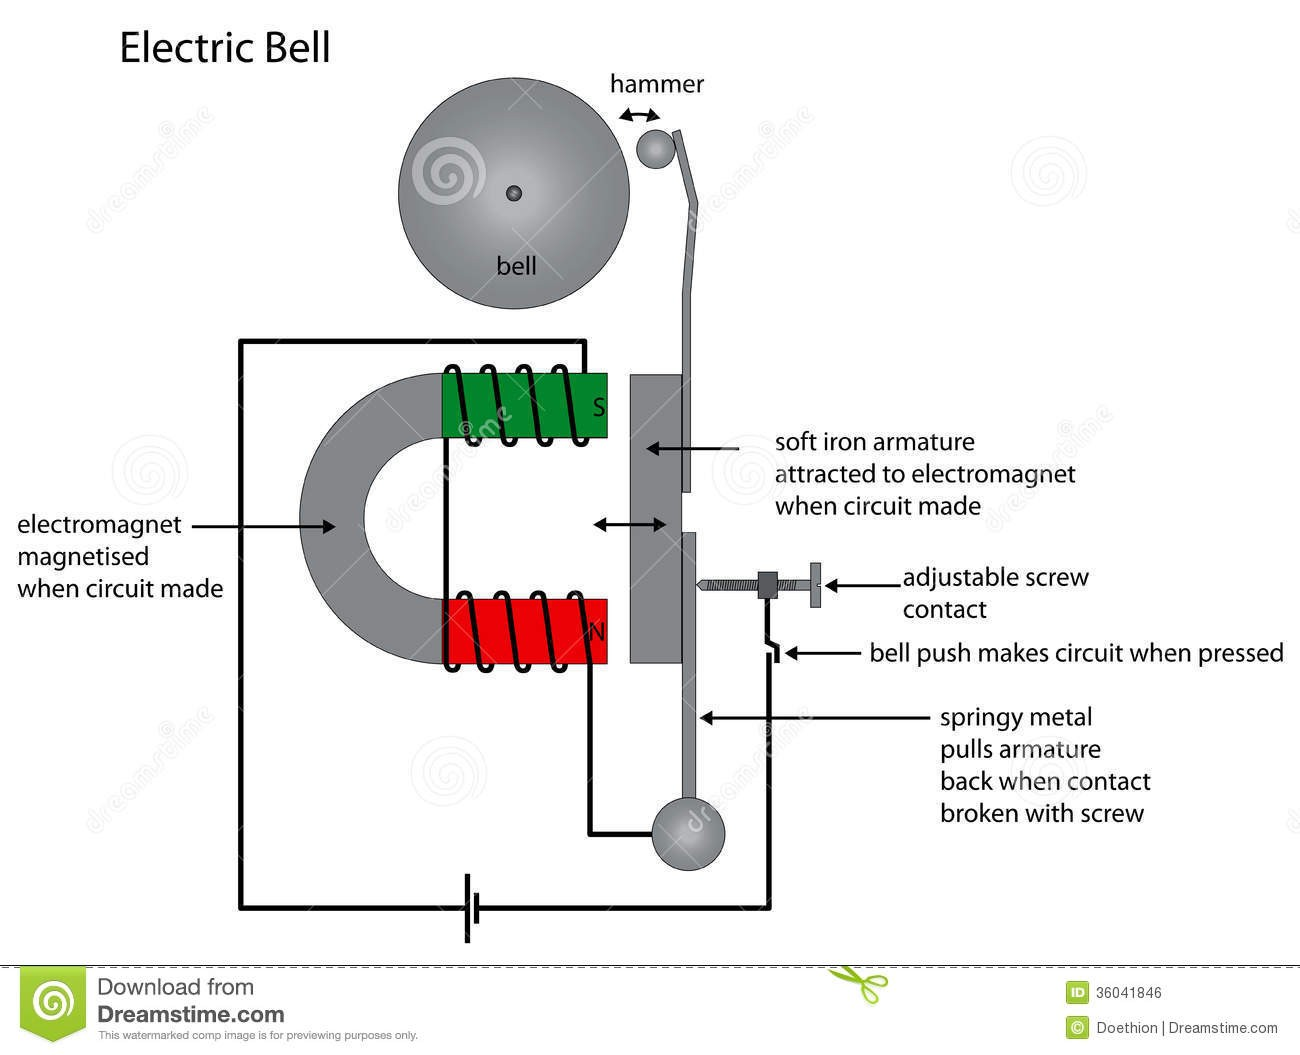 royalty free stock image electric bell diagram showing electromagnet use illustration image